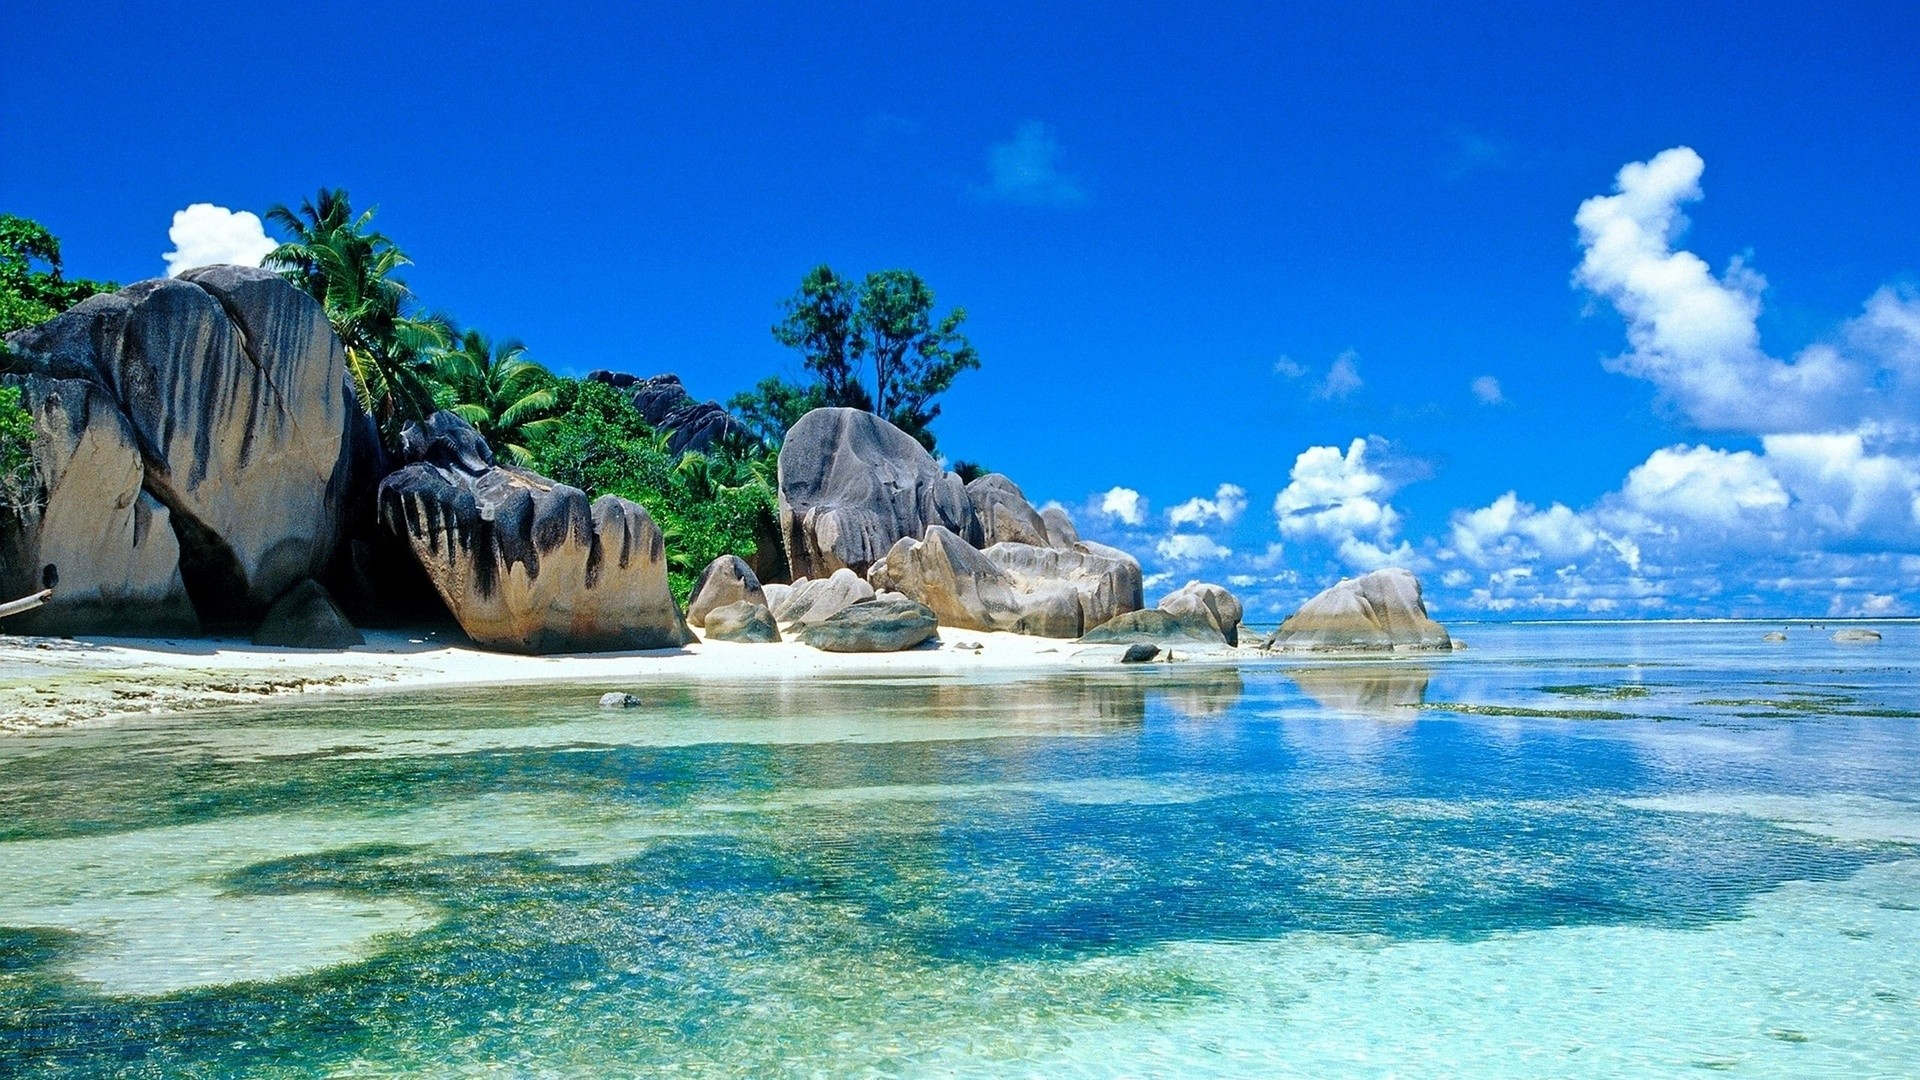 tropical screensavers and wallpaper (50+ images)